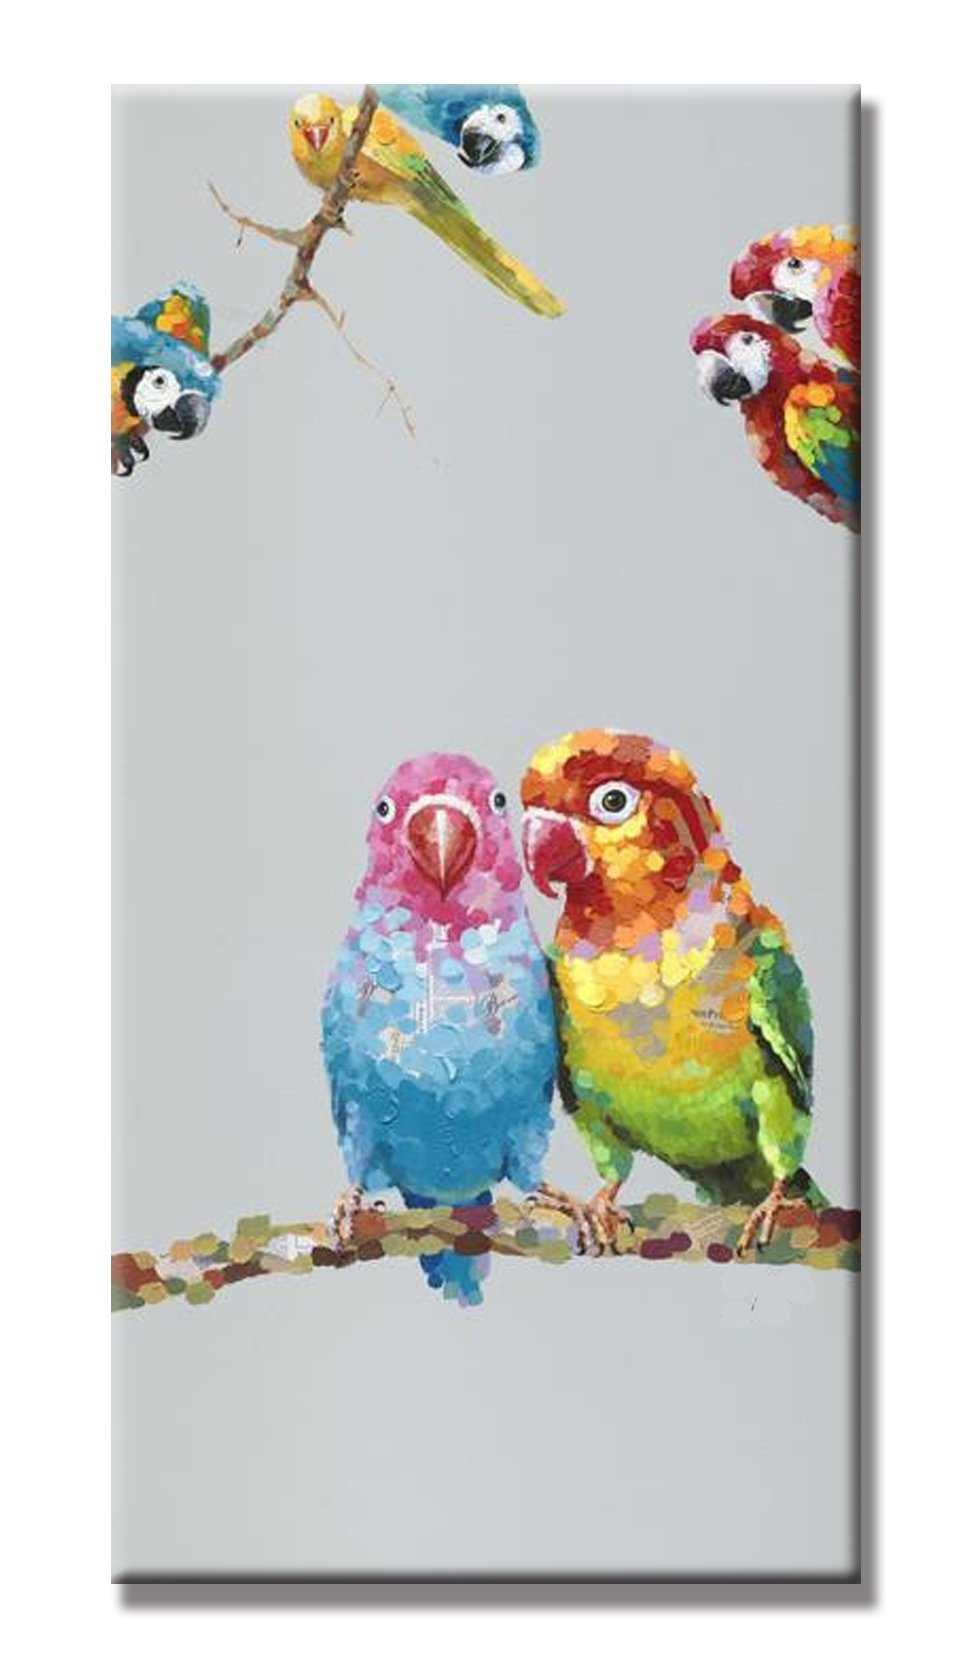 SEVEN WALL ARTS - 100% Hand Painted Oil Painting Cute Animals with Stretched Frame Artwork For Wall Decor 18 x 36 Inch (Love Birds)